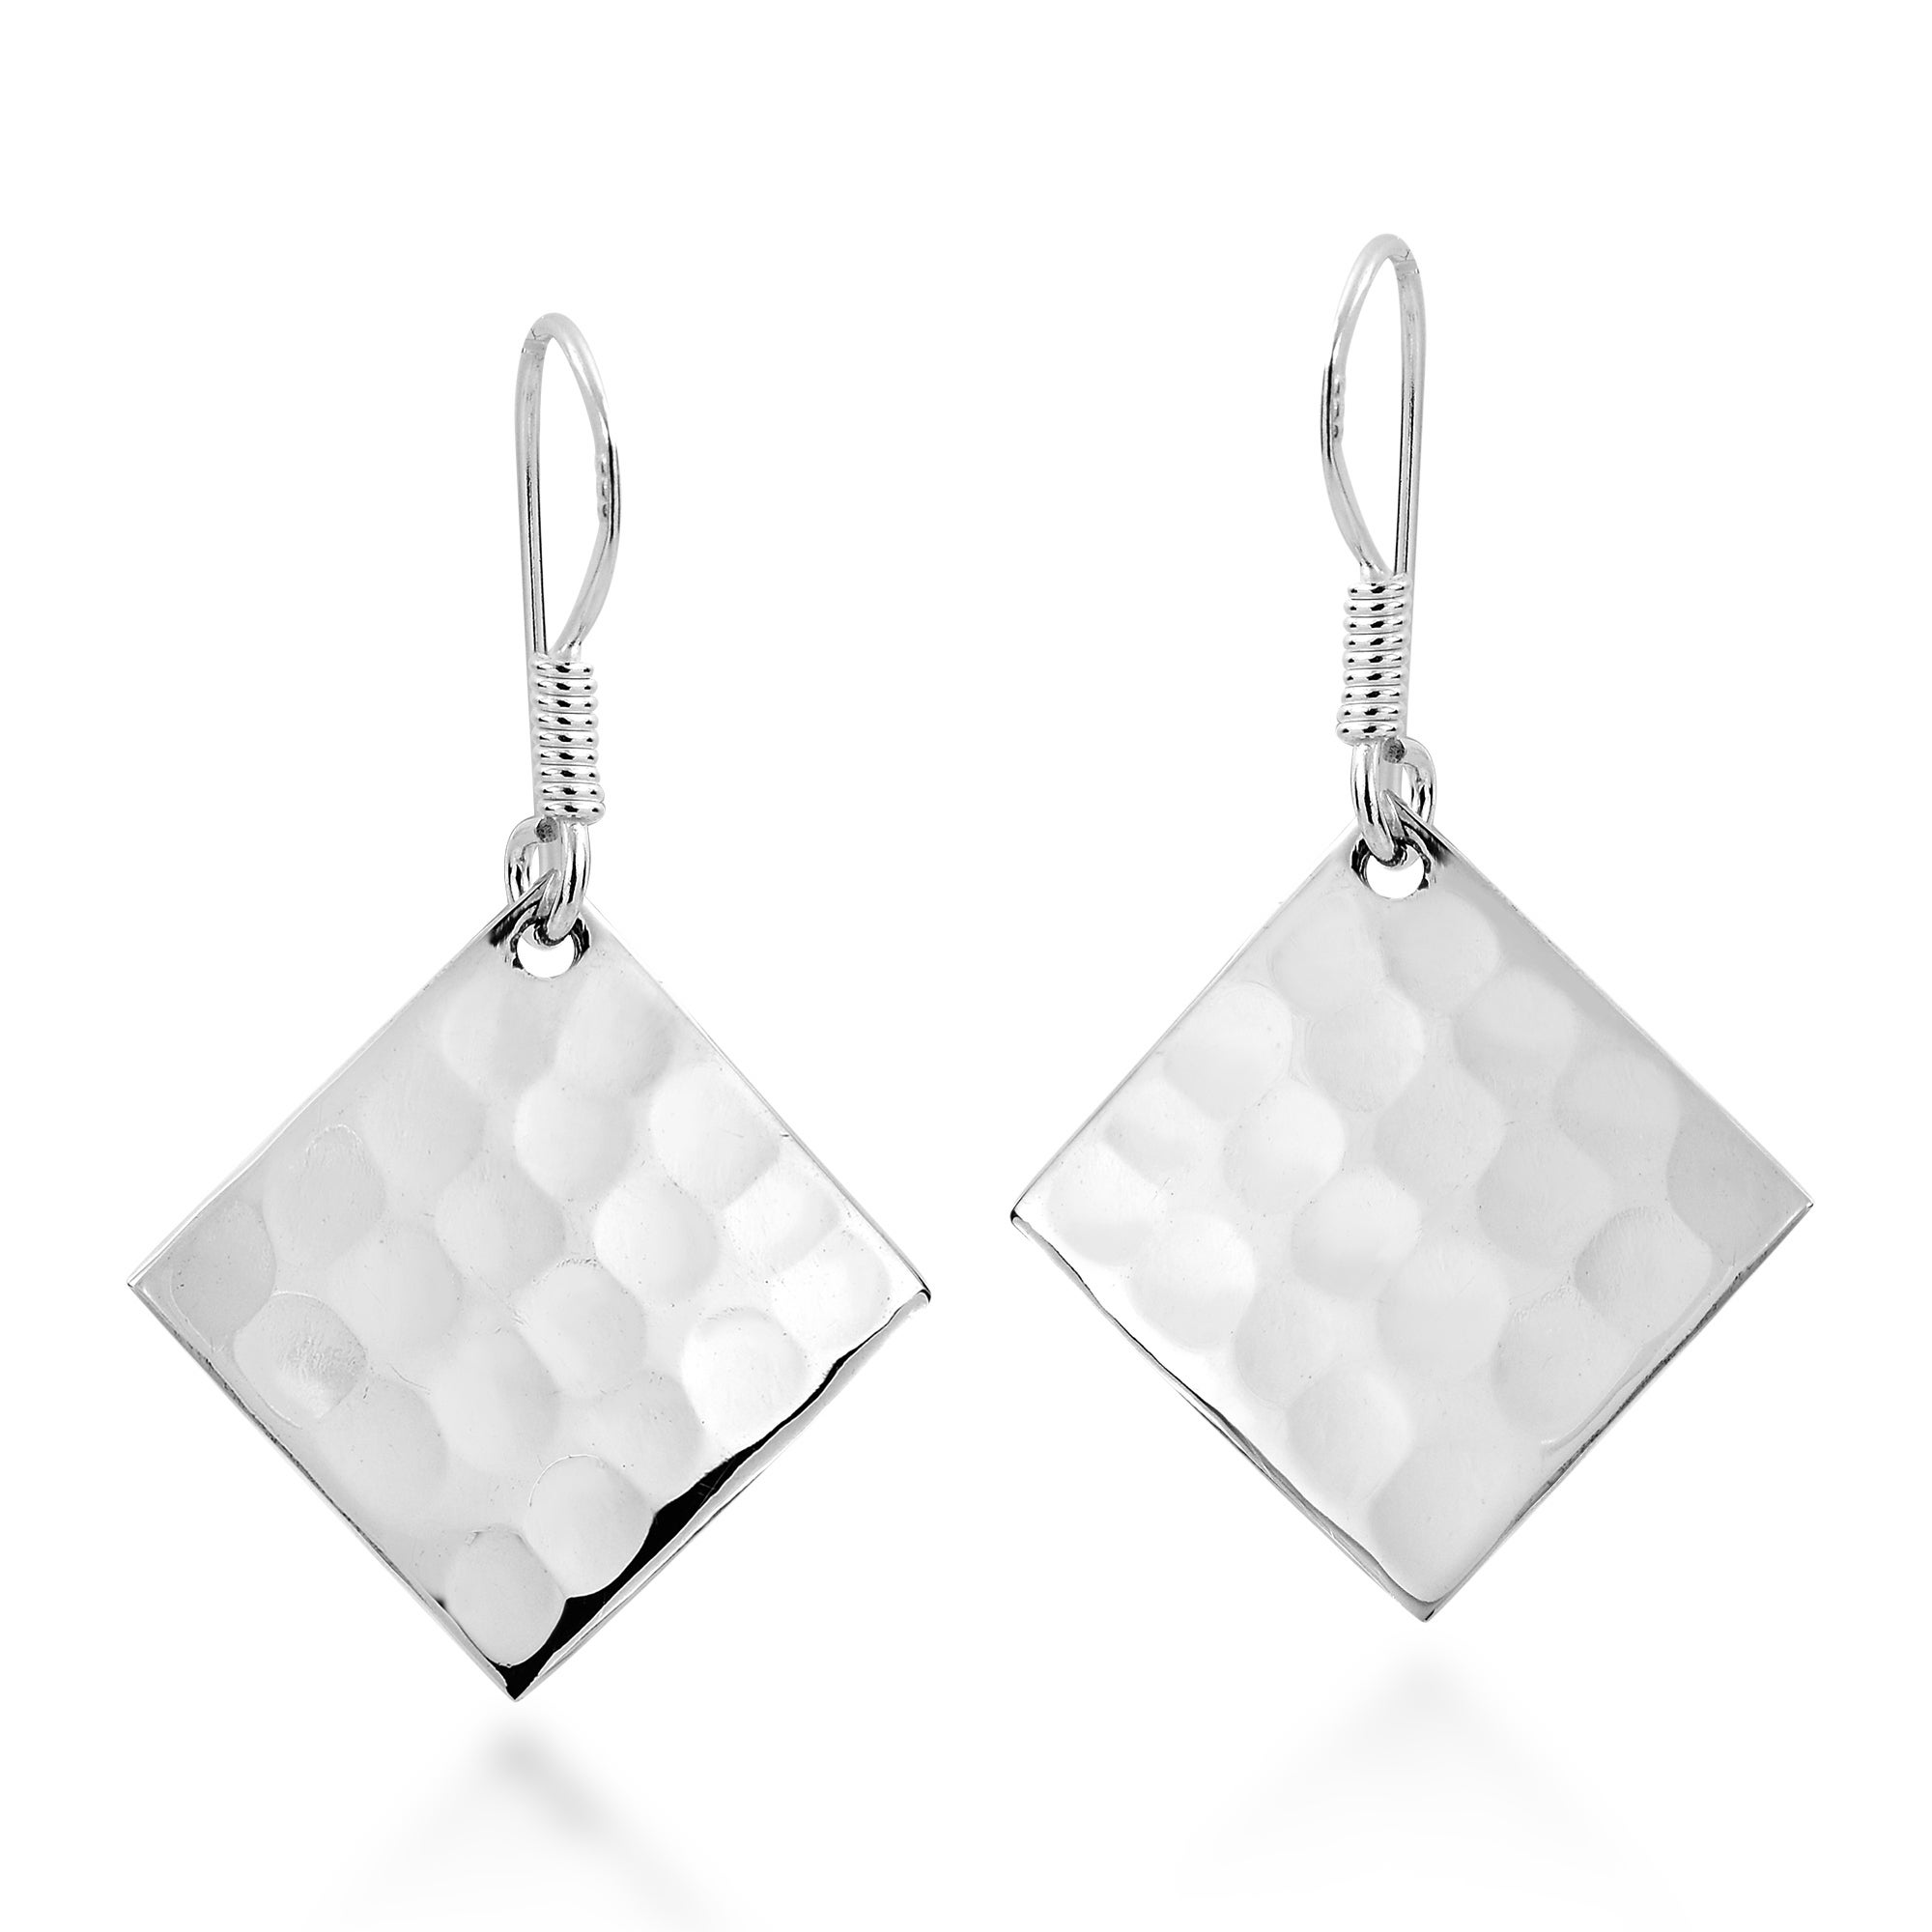 Handmade Hammer Texture Tilted Square 925 Silver Earrings Thailand On Free Shipping Orders Over 45 7524100